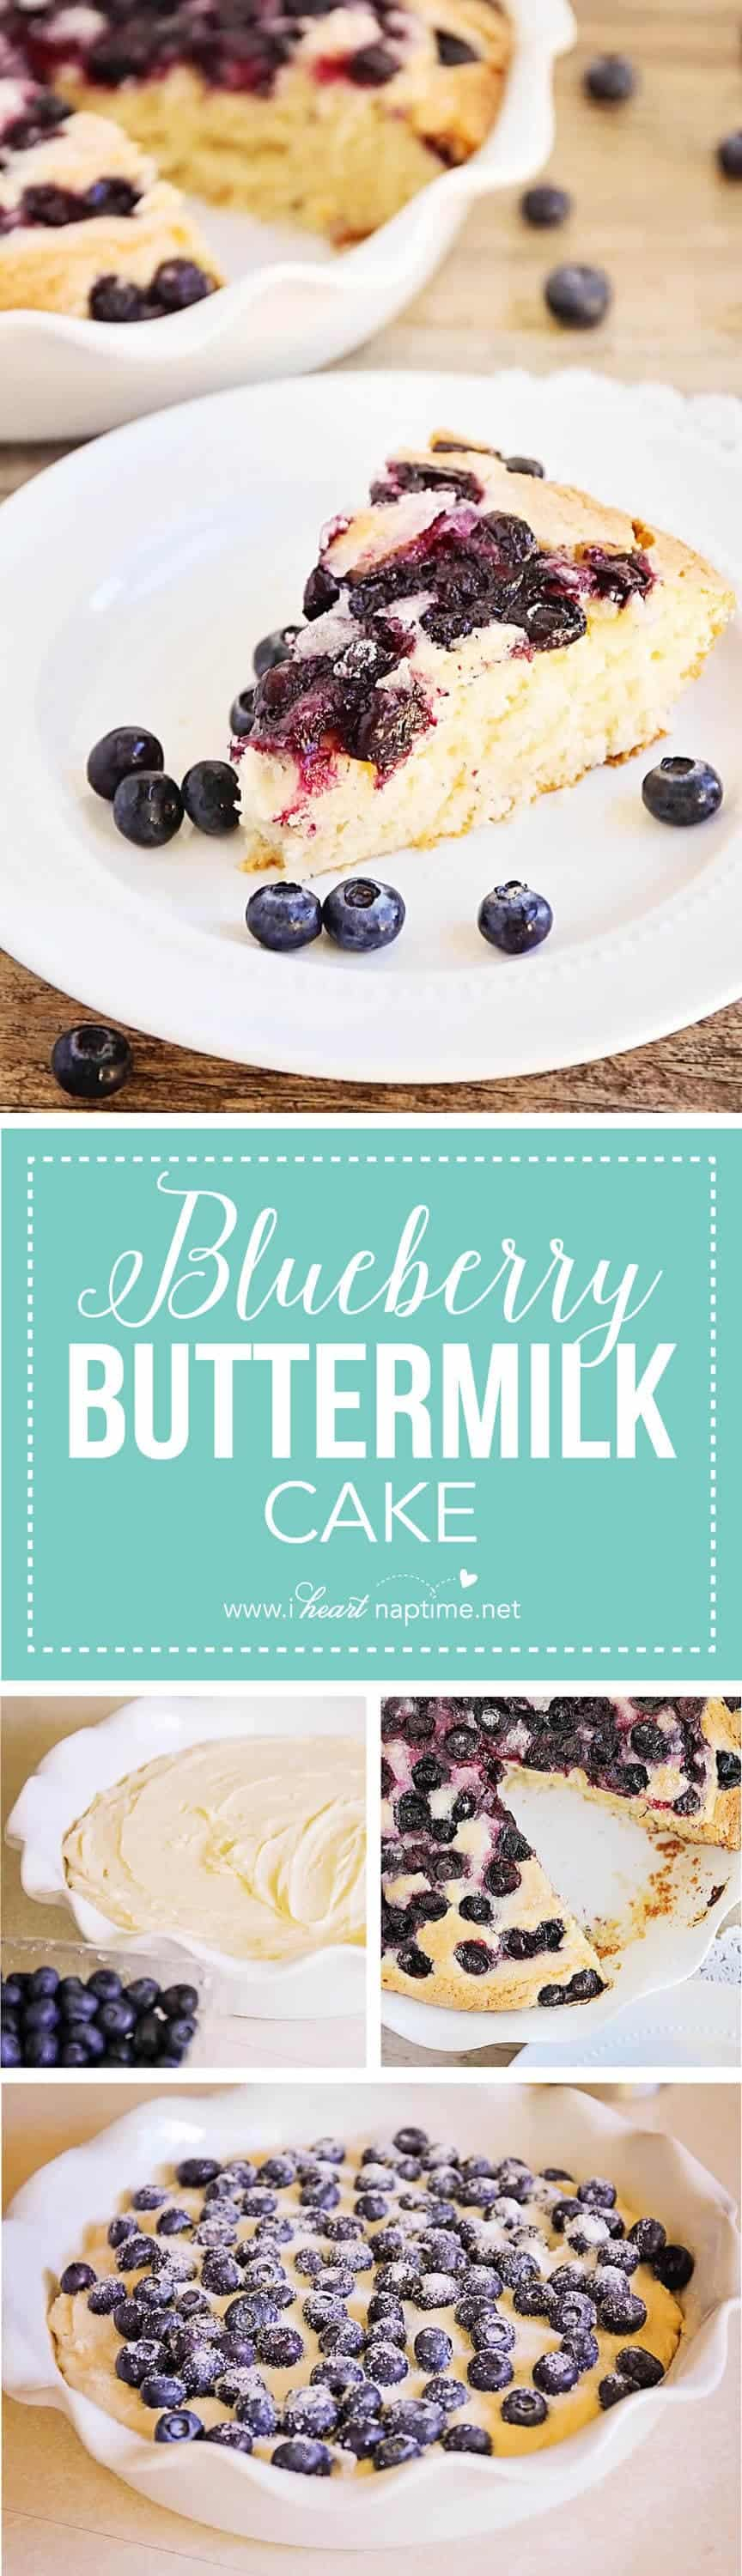 Blueberry Buttermilk Cake - I Heart Nap Time